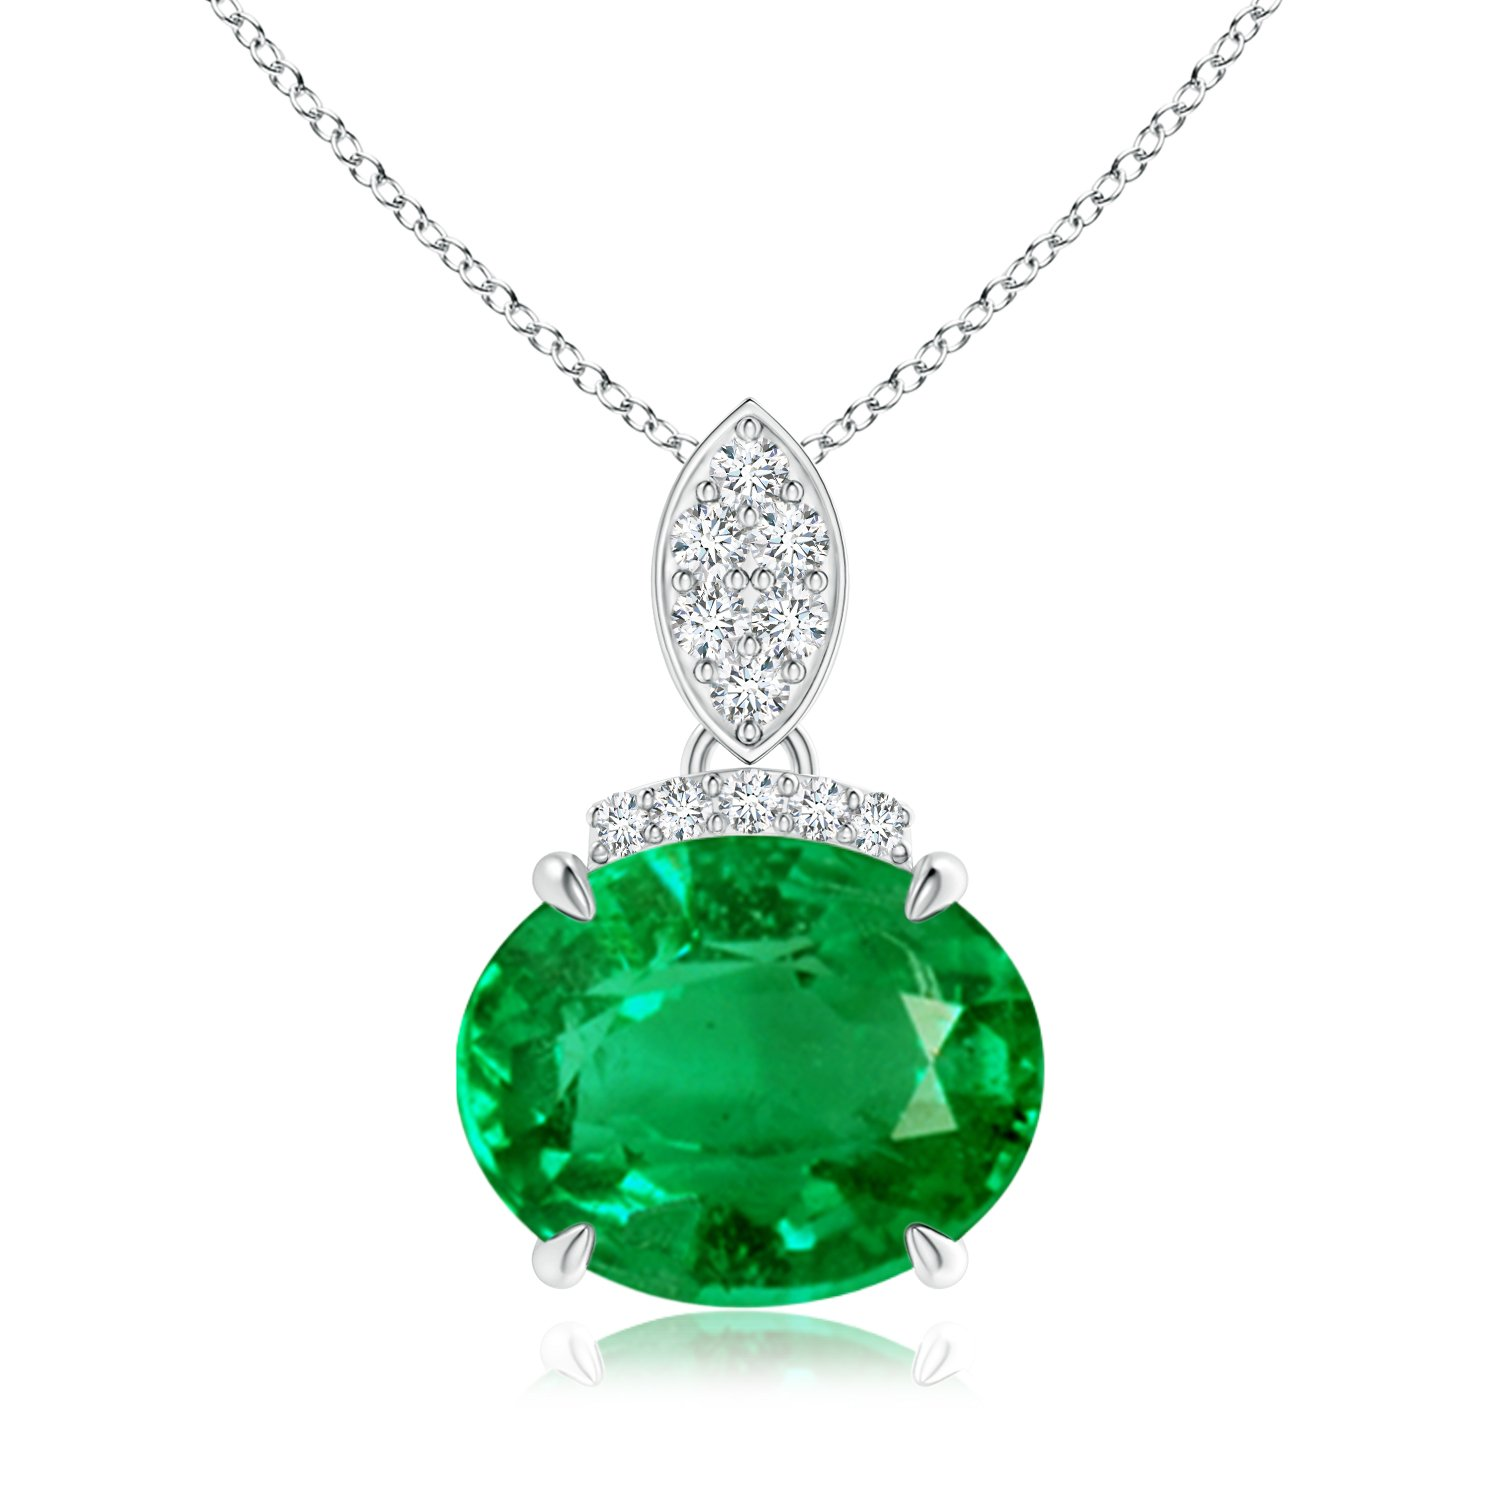 guide mines colombia with and known emeralds jewelry from s expert heat consider purest a in be cleanest consumer the to are hues blog treated green worldwide image those emerald consumers terms